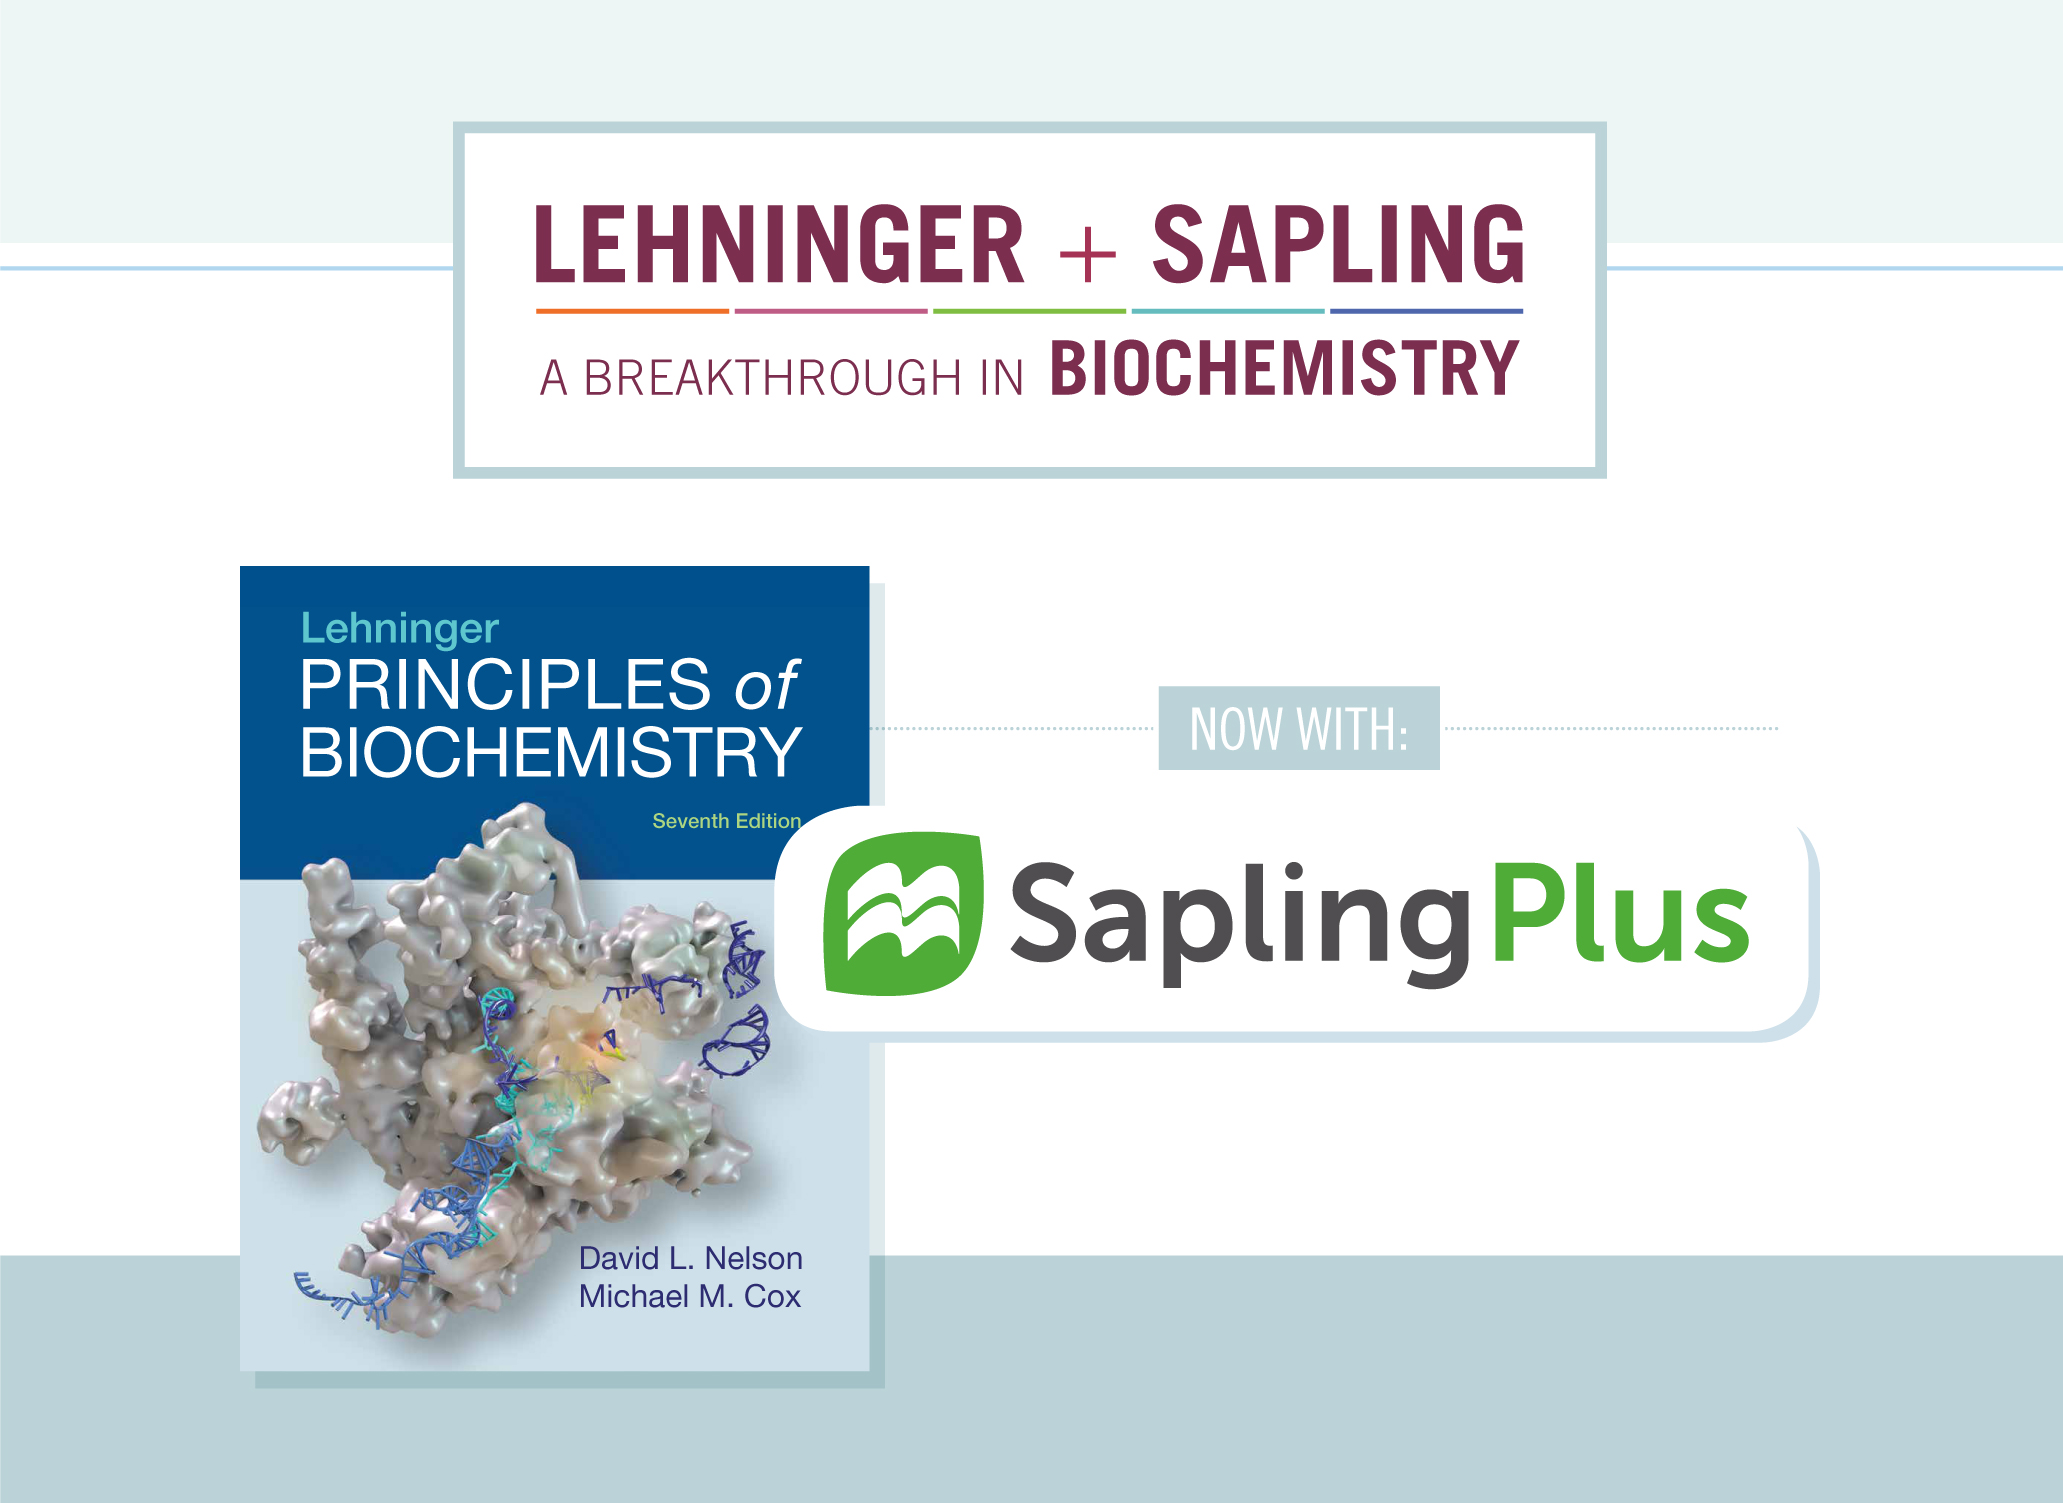 A SaplingPlus package, including a picture of the cover of 'Lehninger Principles of Biochemistry, seventh edition' and a heading which says, 'Lehninger + Sapling, a breakthrough in biochemistry, now with SaplingPlus.'